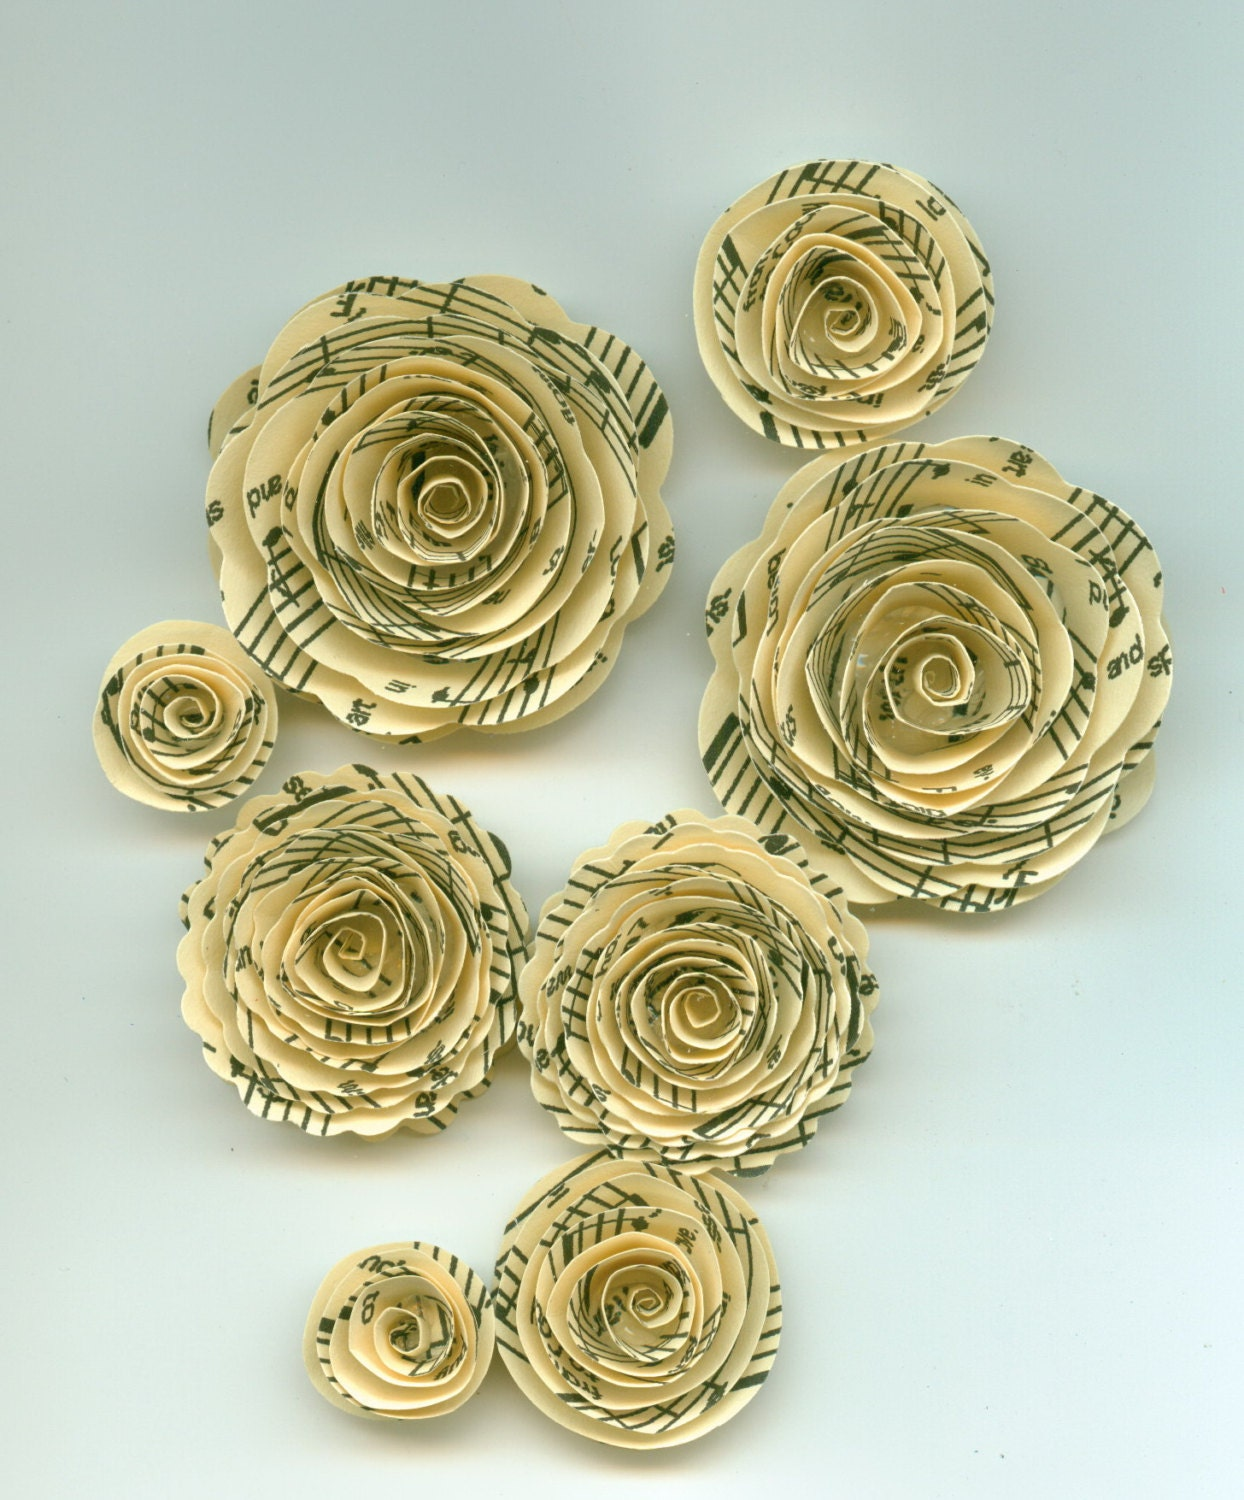 Ivory Music Note Rose Spiral Paper Flowers For Weddings Bouquets